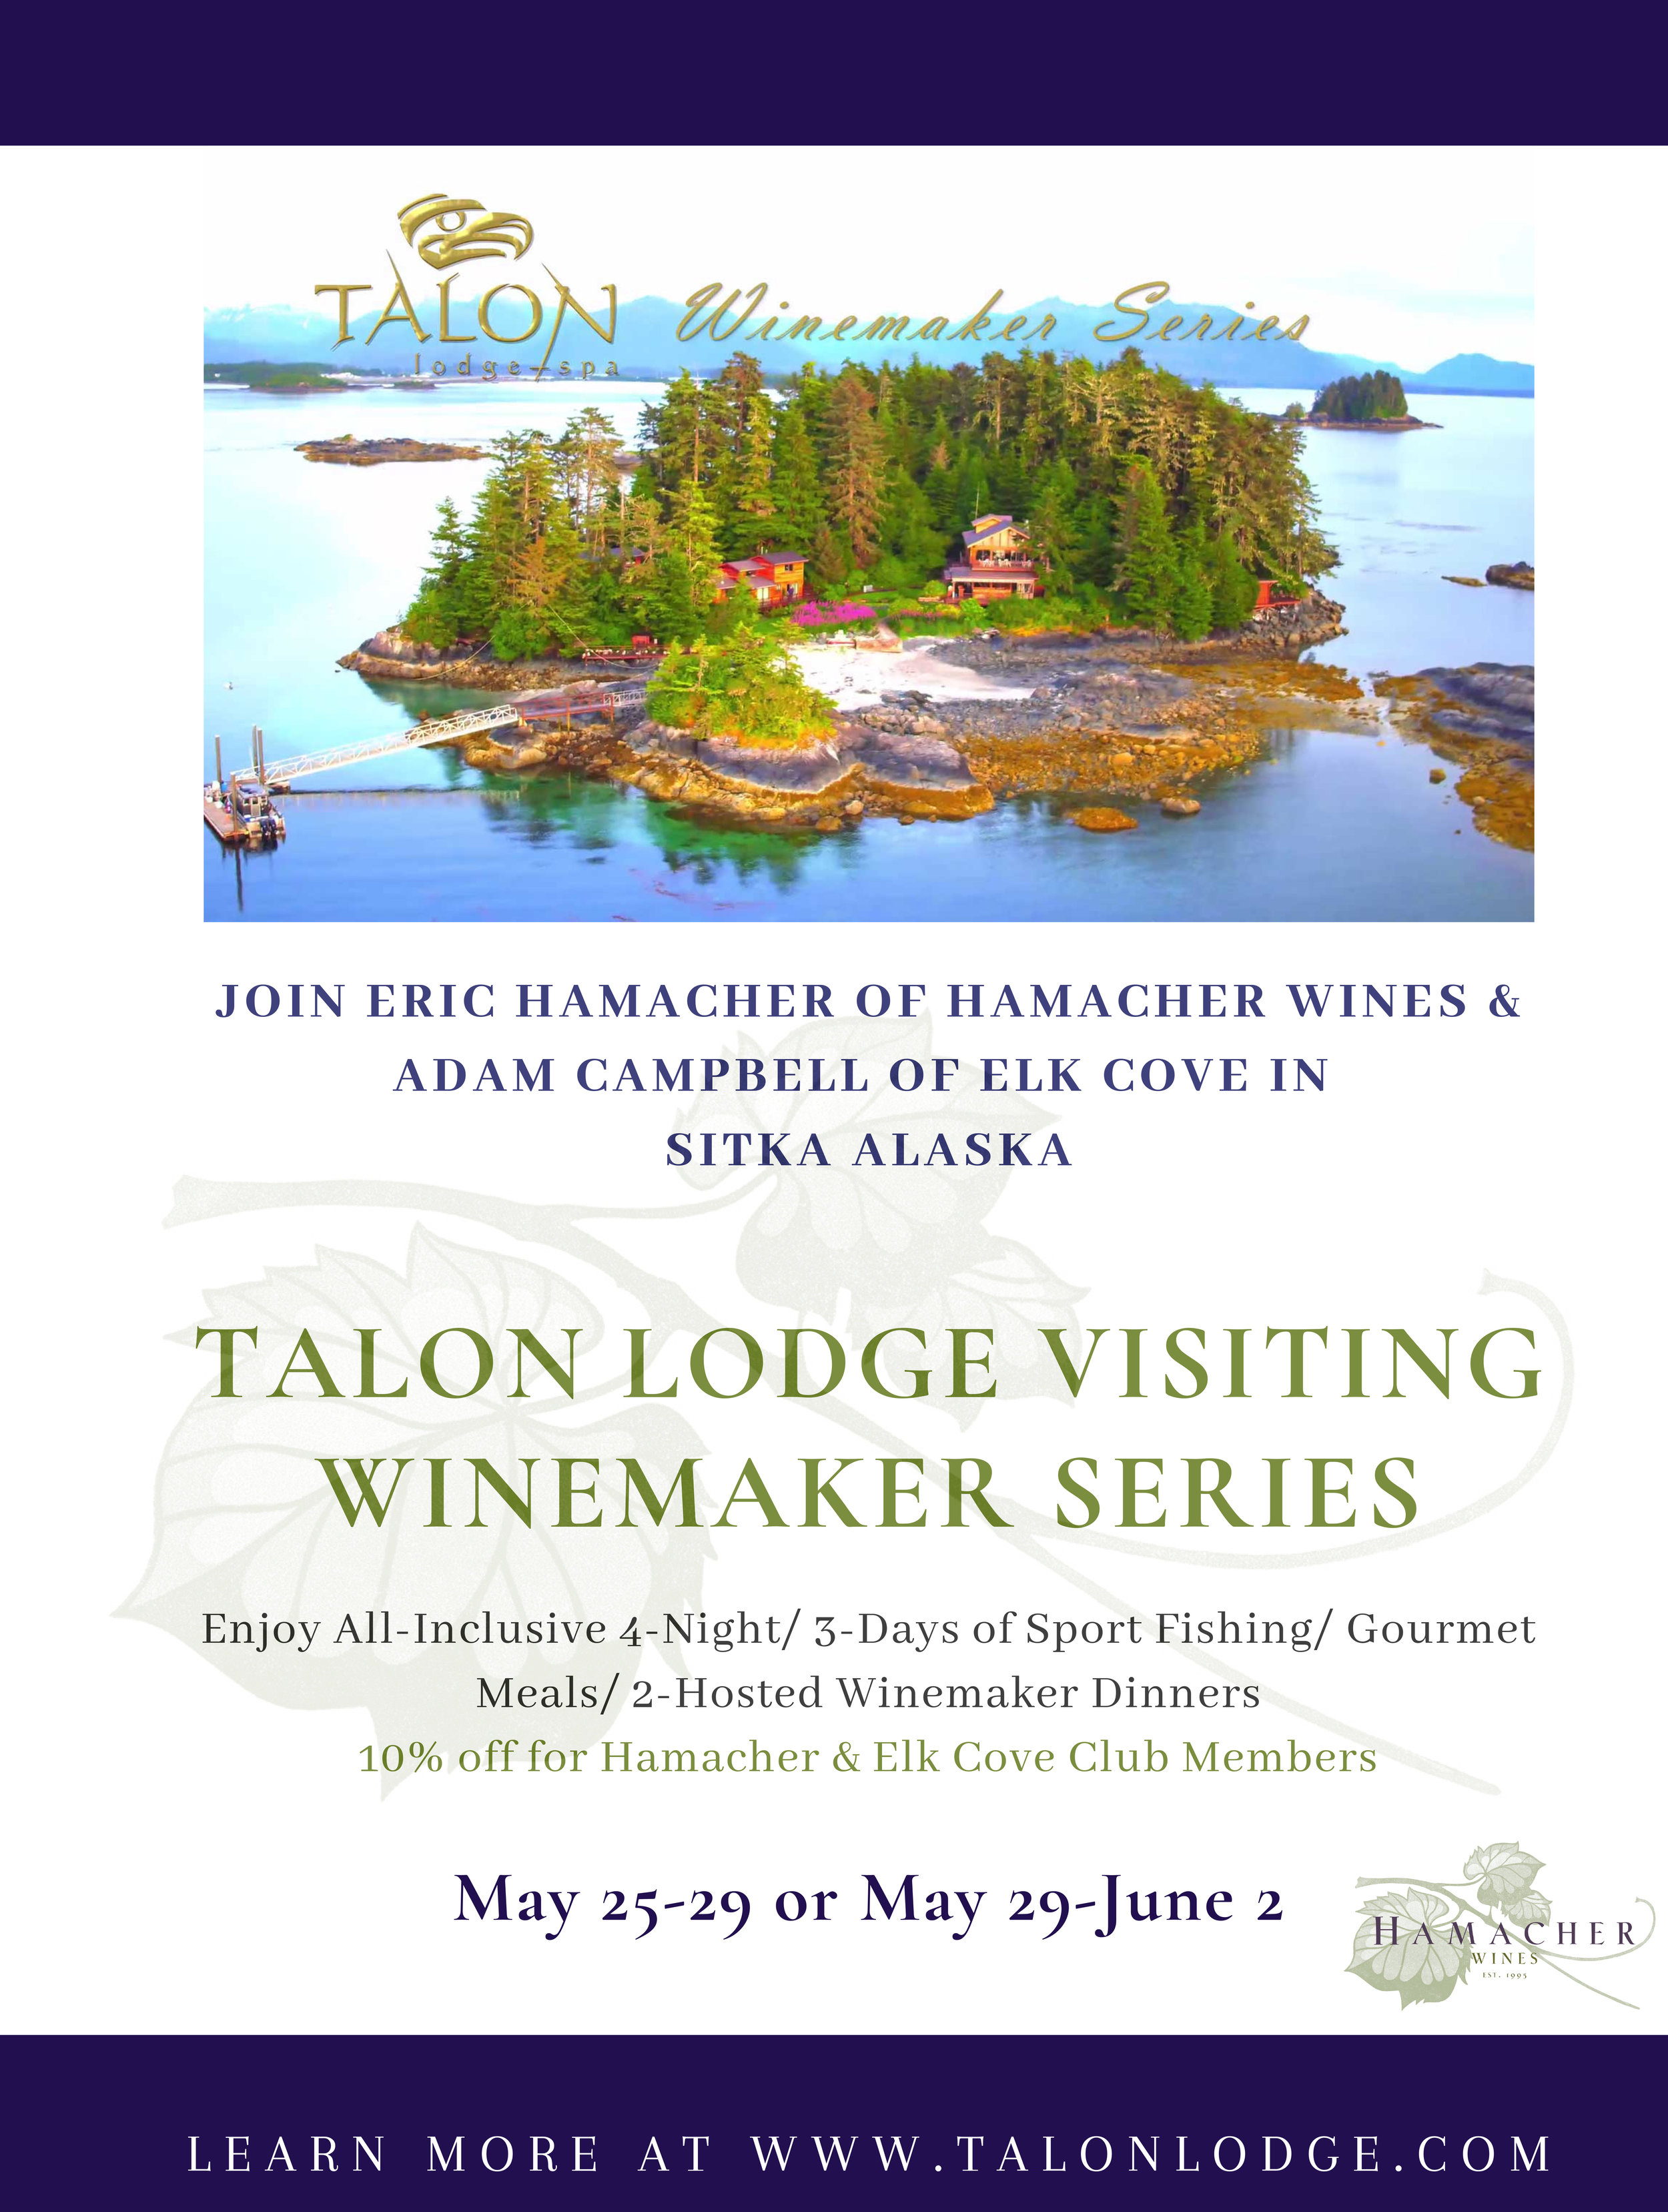 Talon Lodge Winemaker Series.jpg